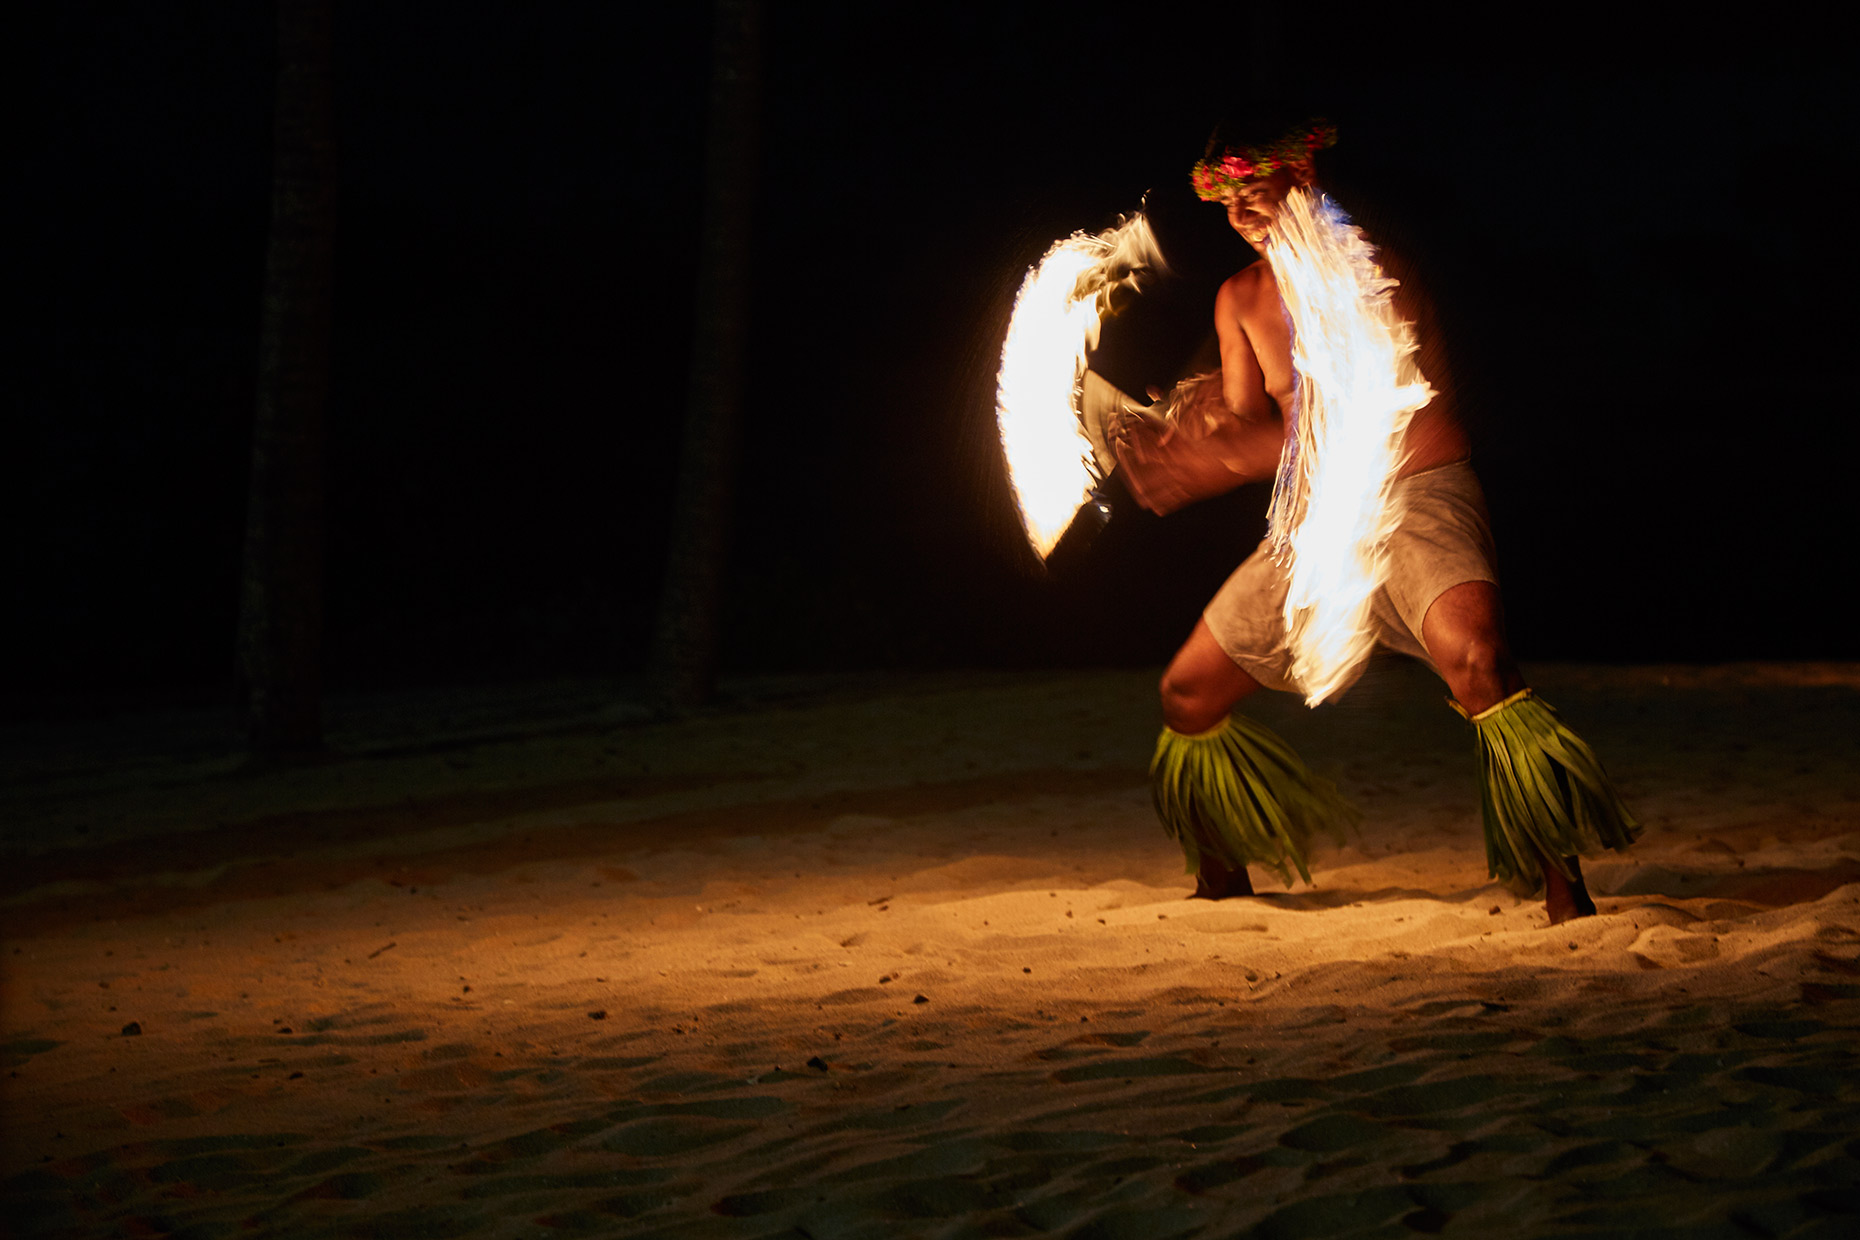 World-Venture_FIji_Day-2_Fire-Dance_021